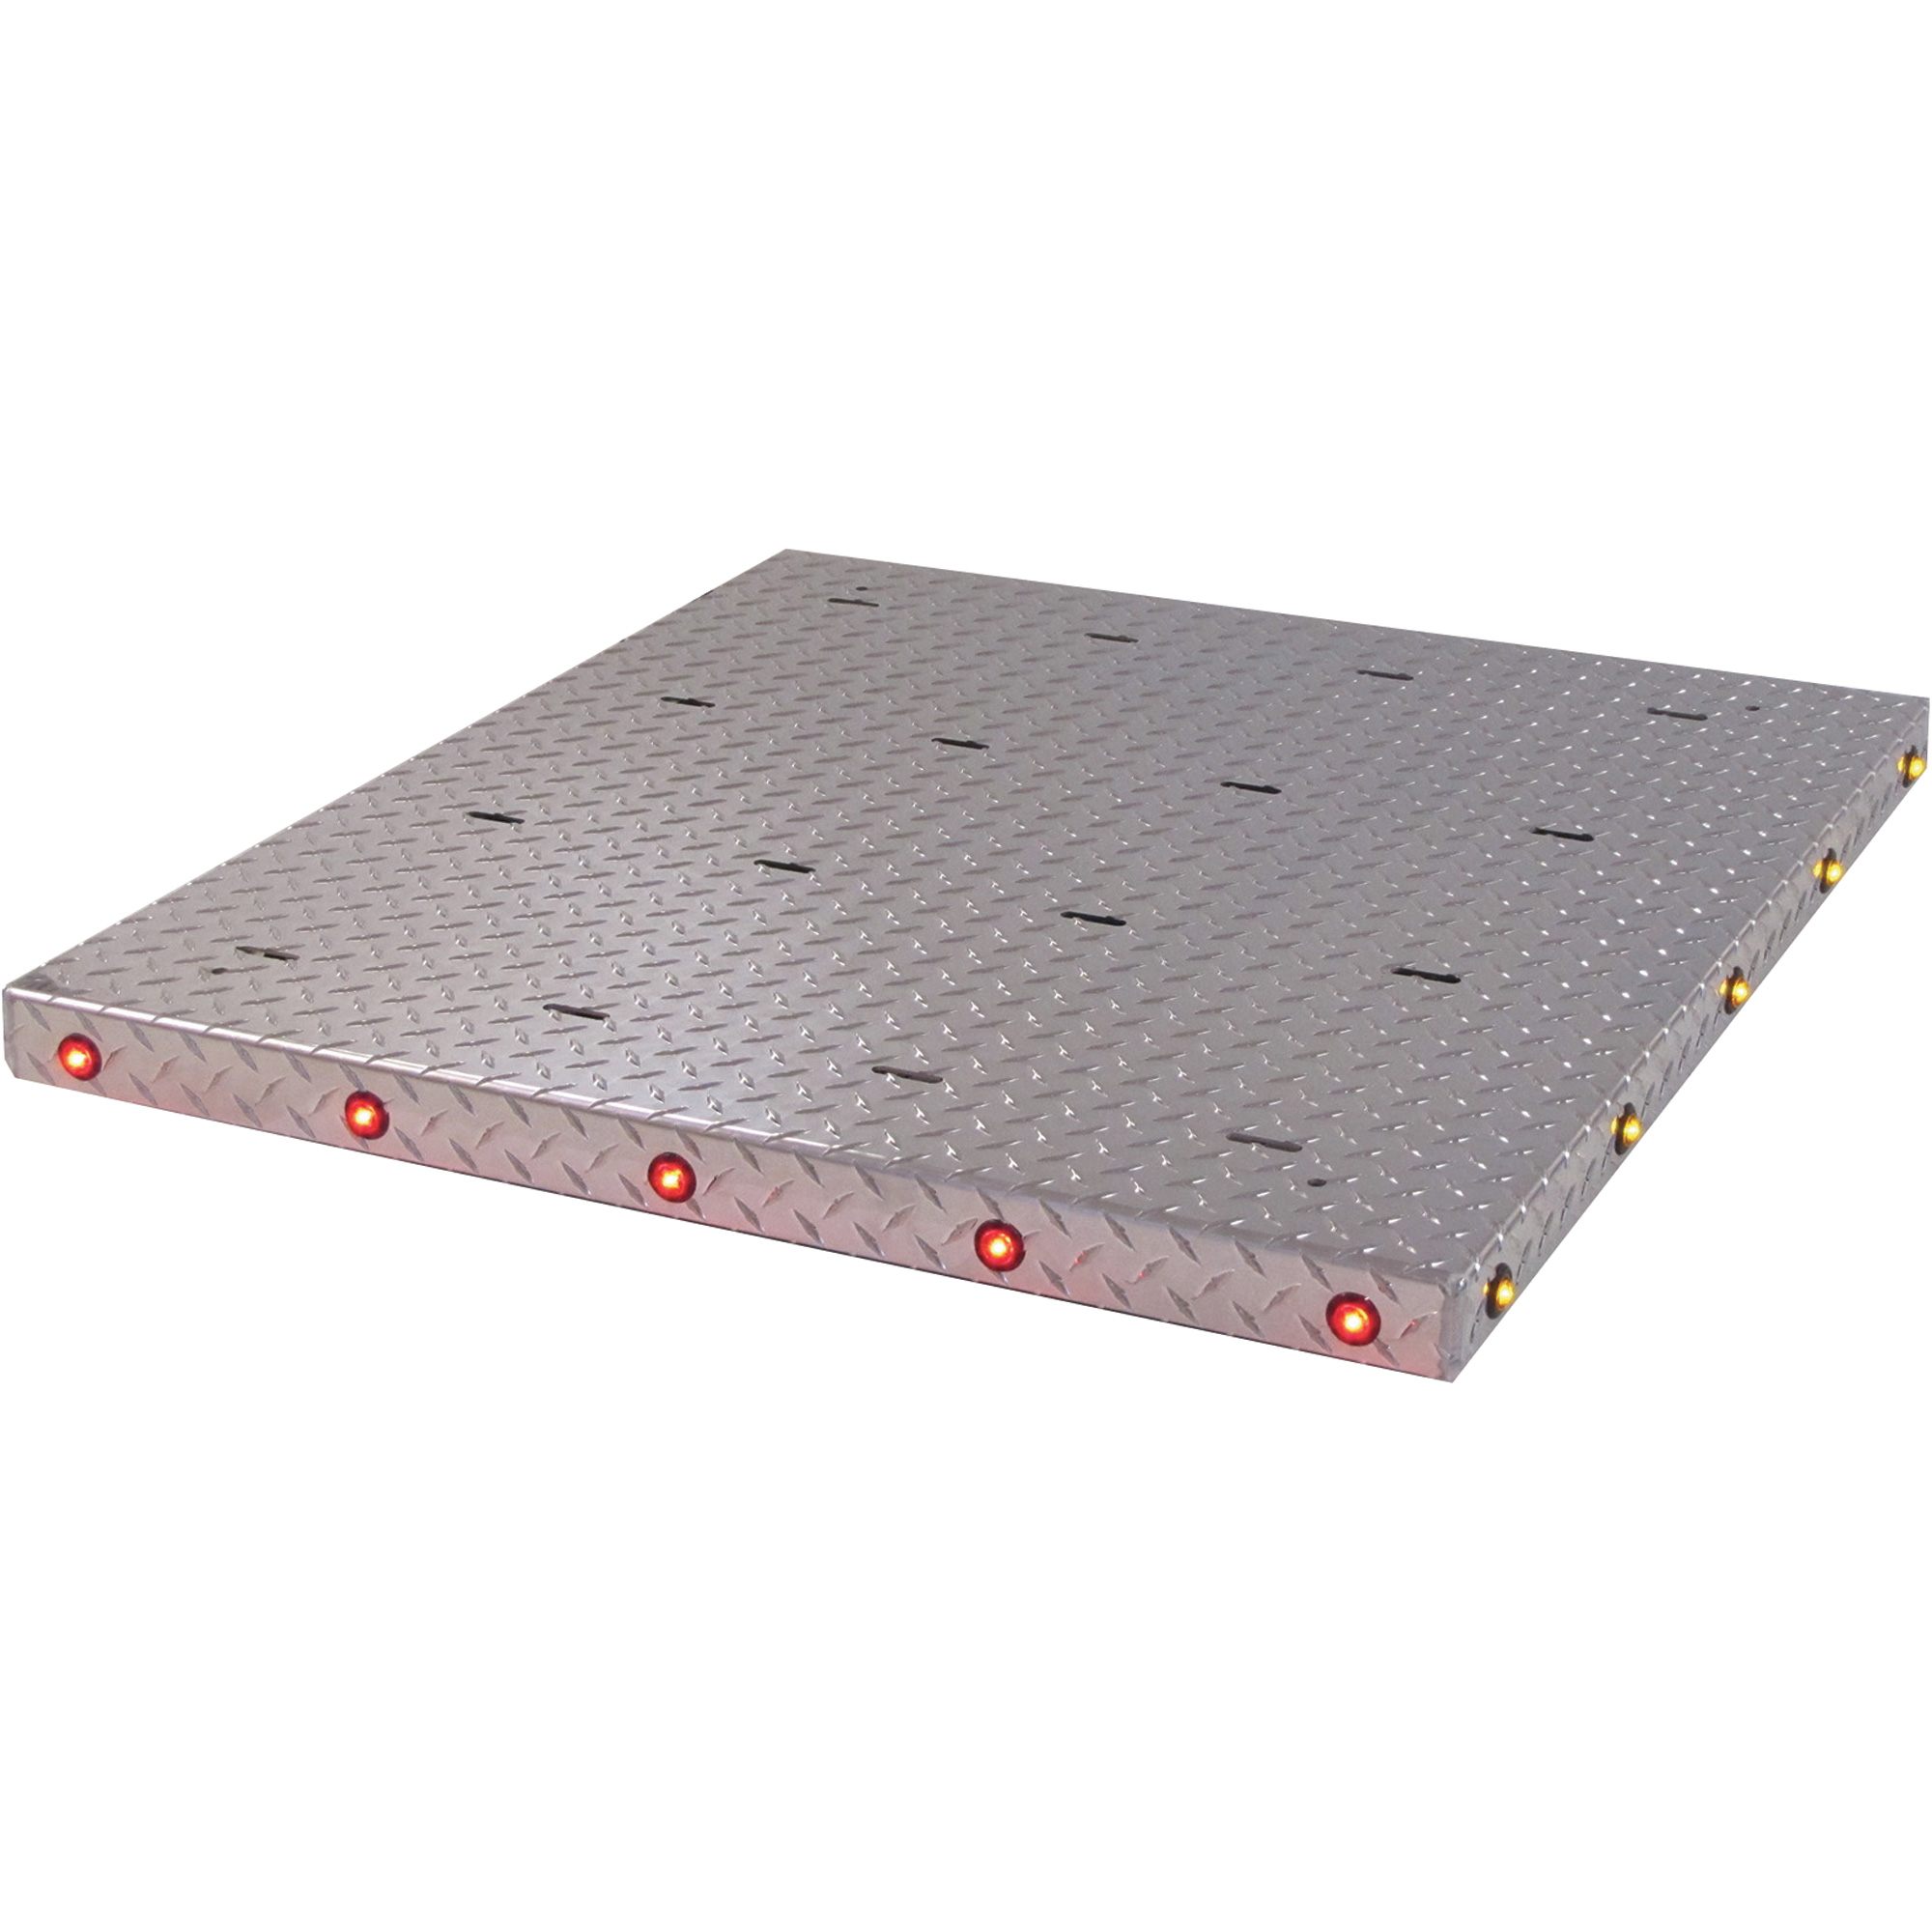 Aluminum deck plate products